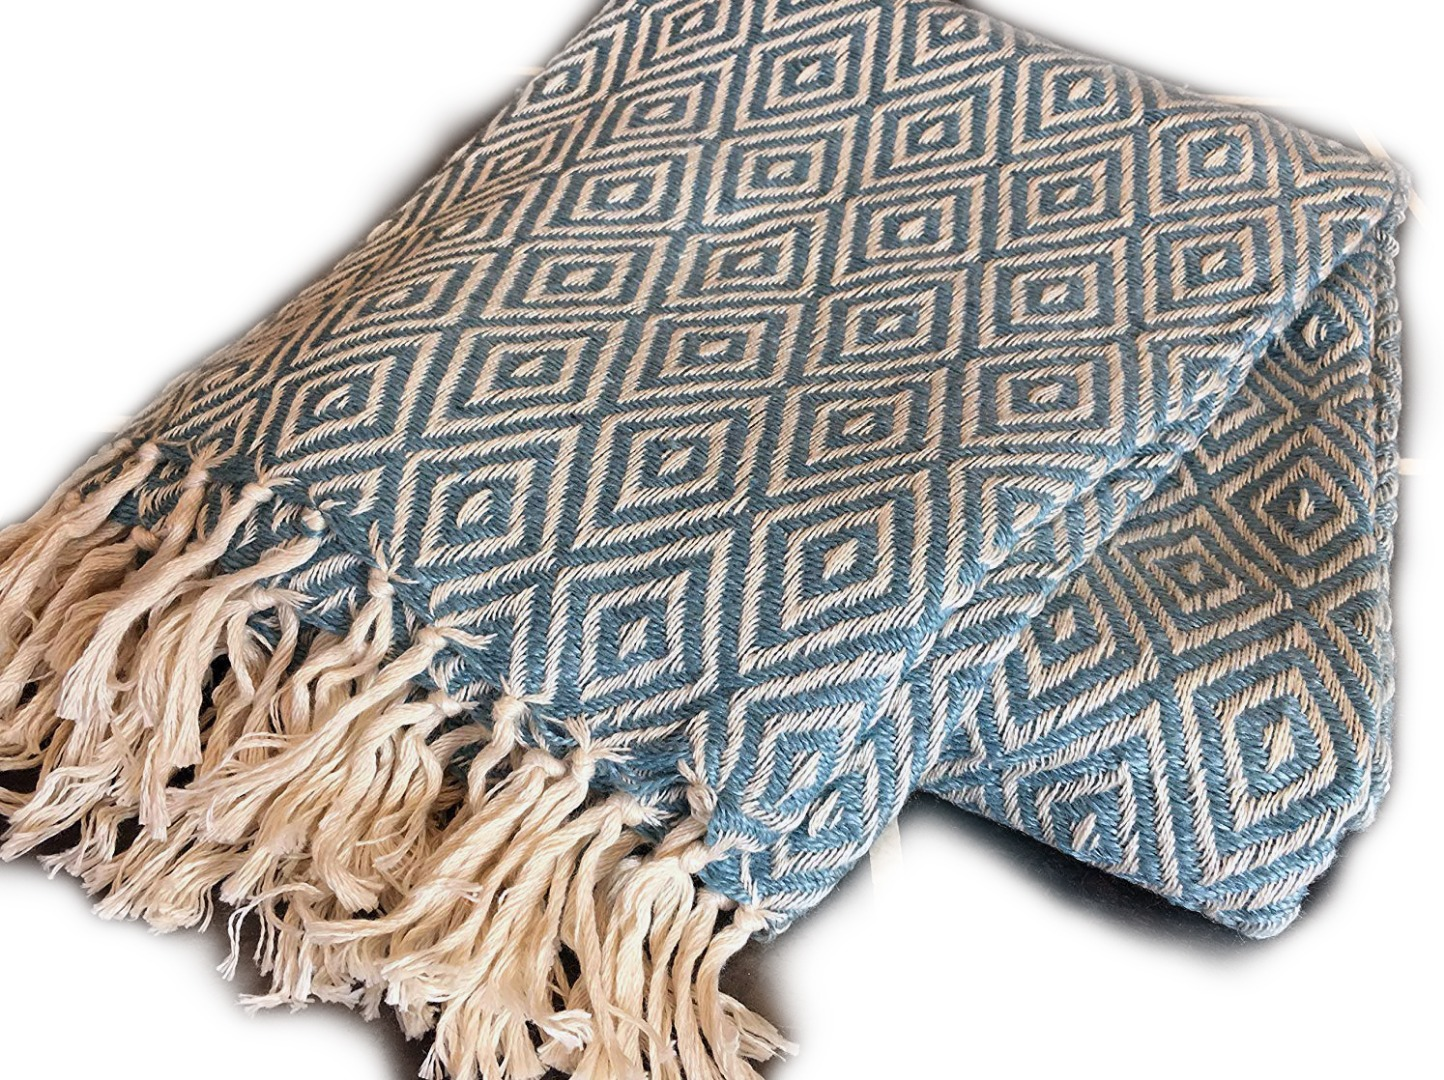 Turquoise Diamond Weave Recycled PET Yarn Blanket Throw